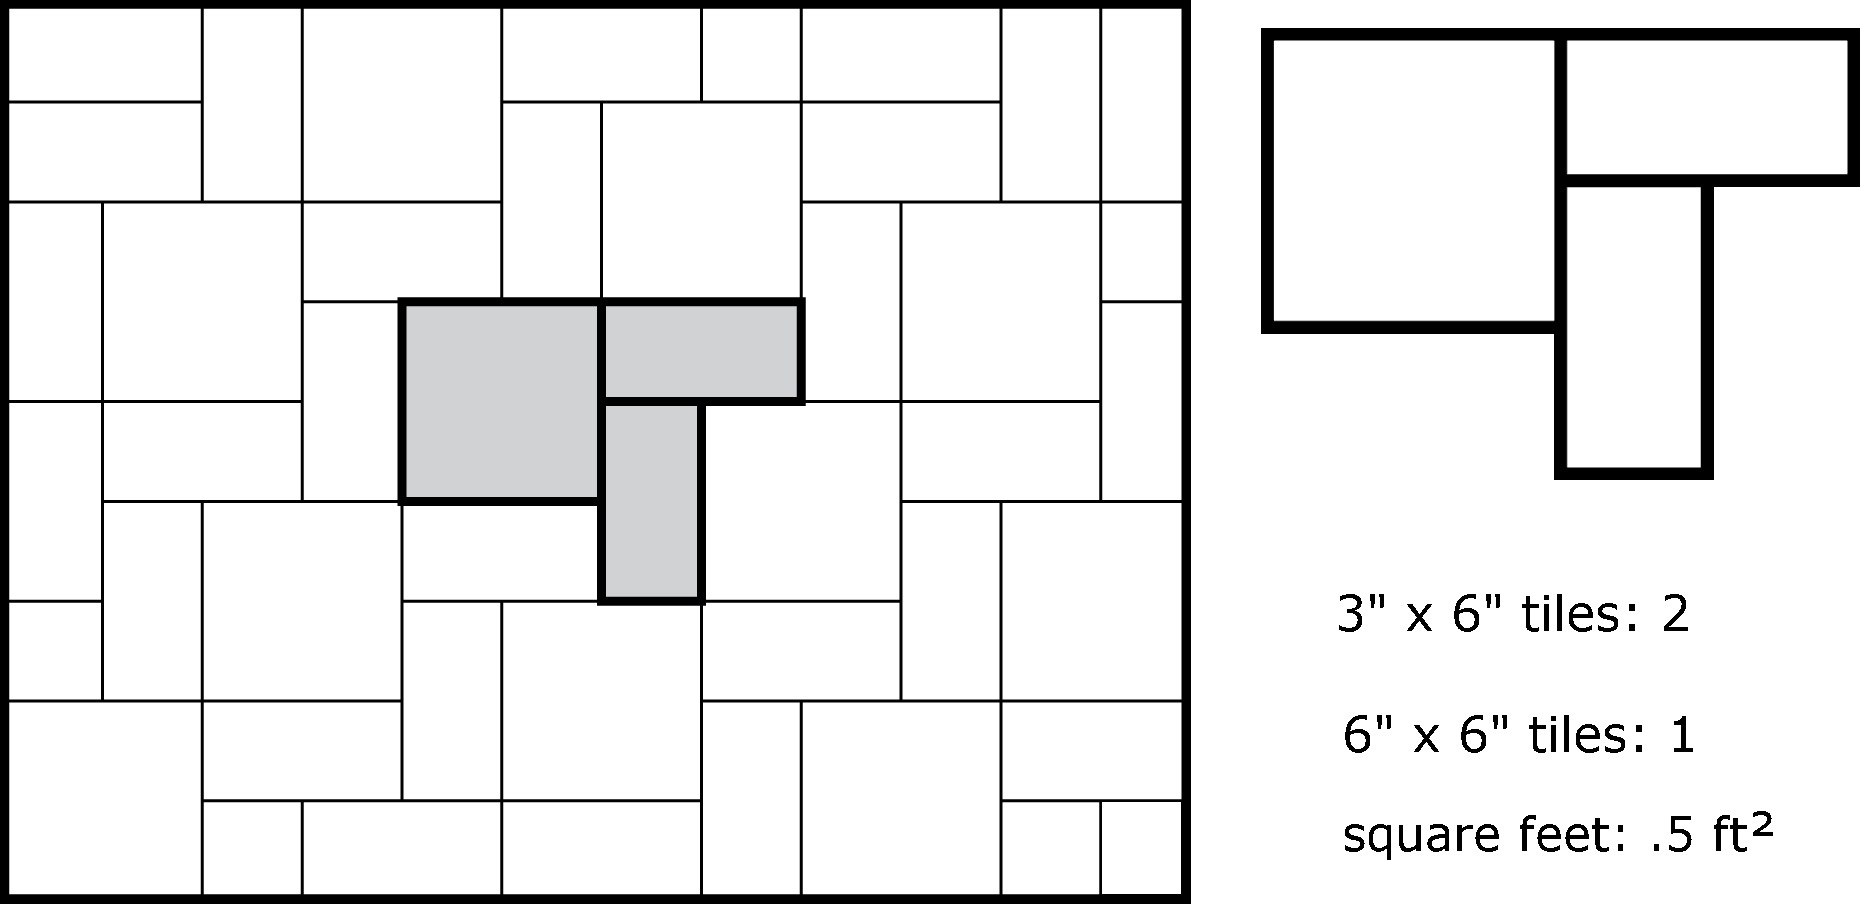 Calculating How Many Tiles Are Needed To Complete A Pattern